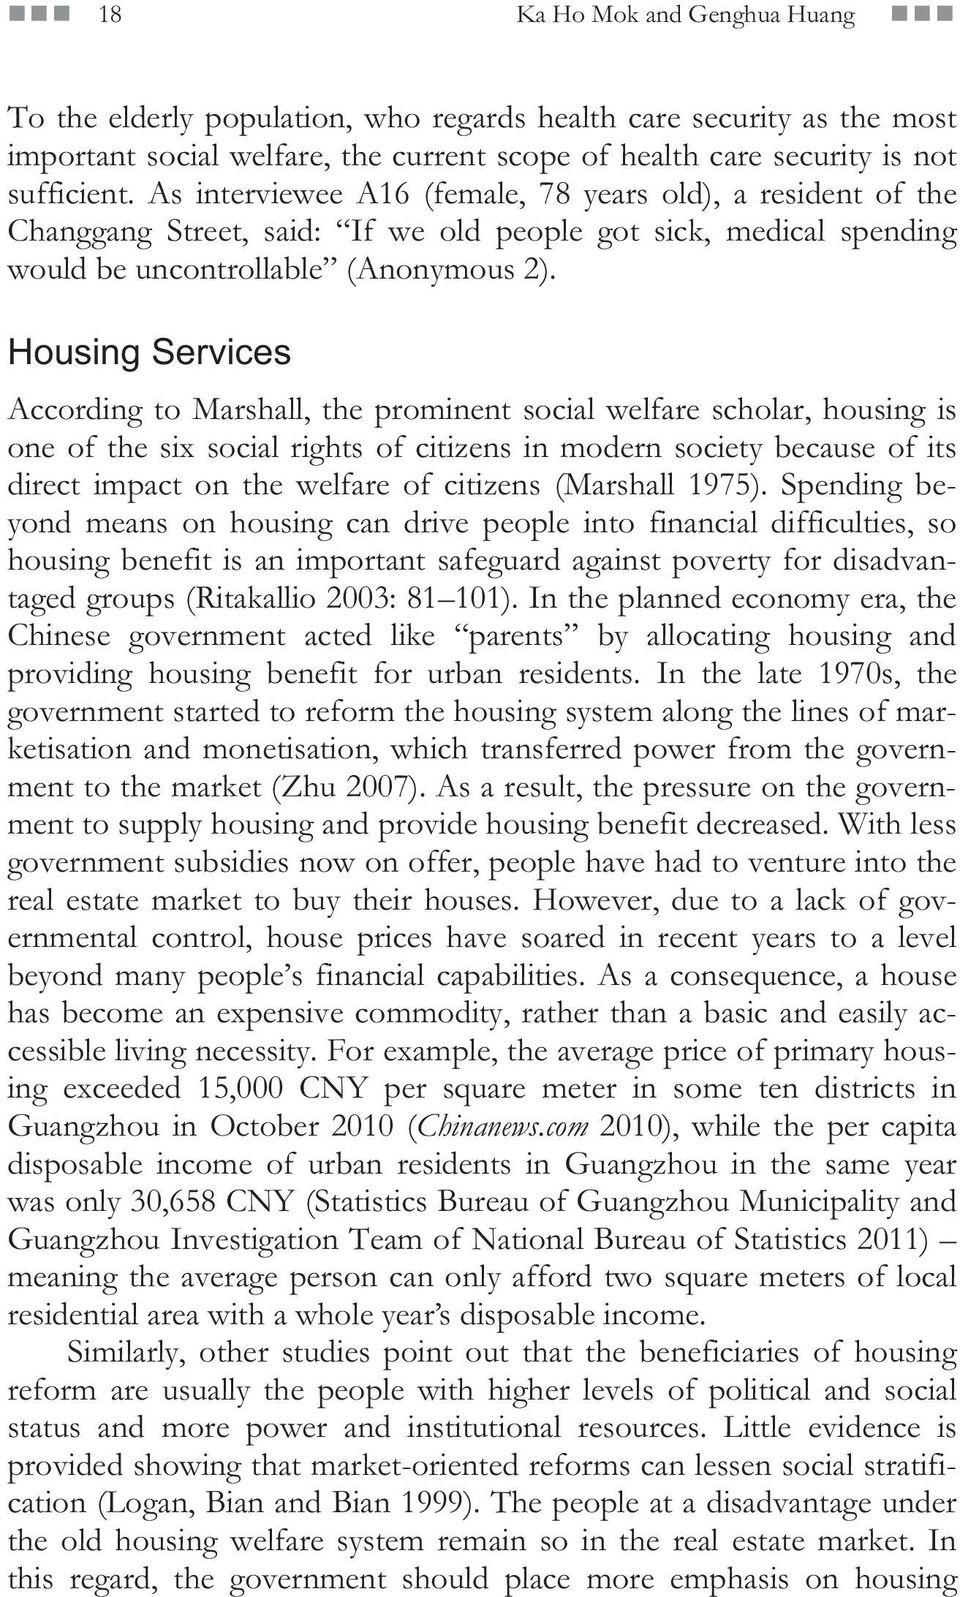 Housing Services According to Marshall, the prominent social welfare scholar, housing is one of the six social rights of citizens in modern society because of its direct impact on the welfare of